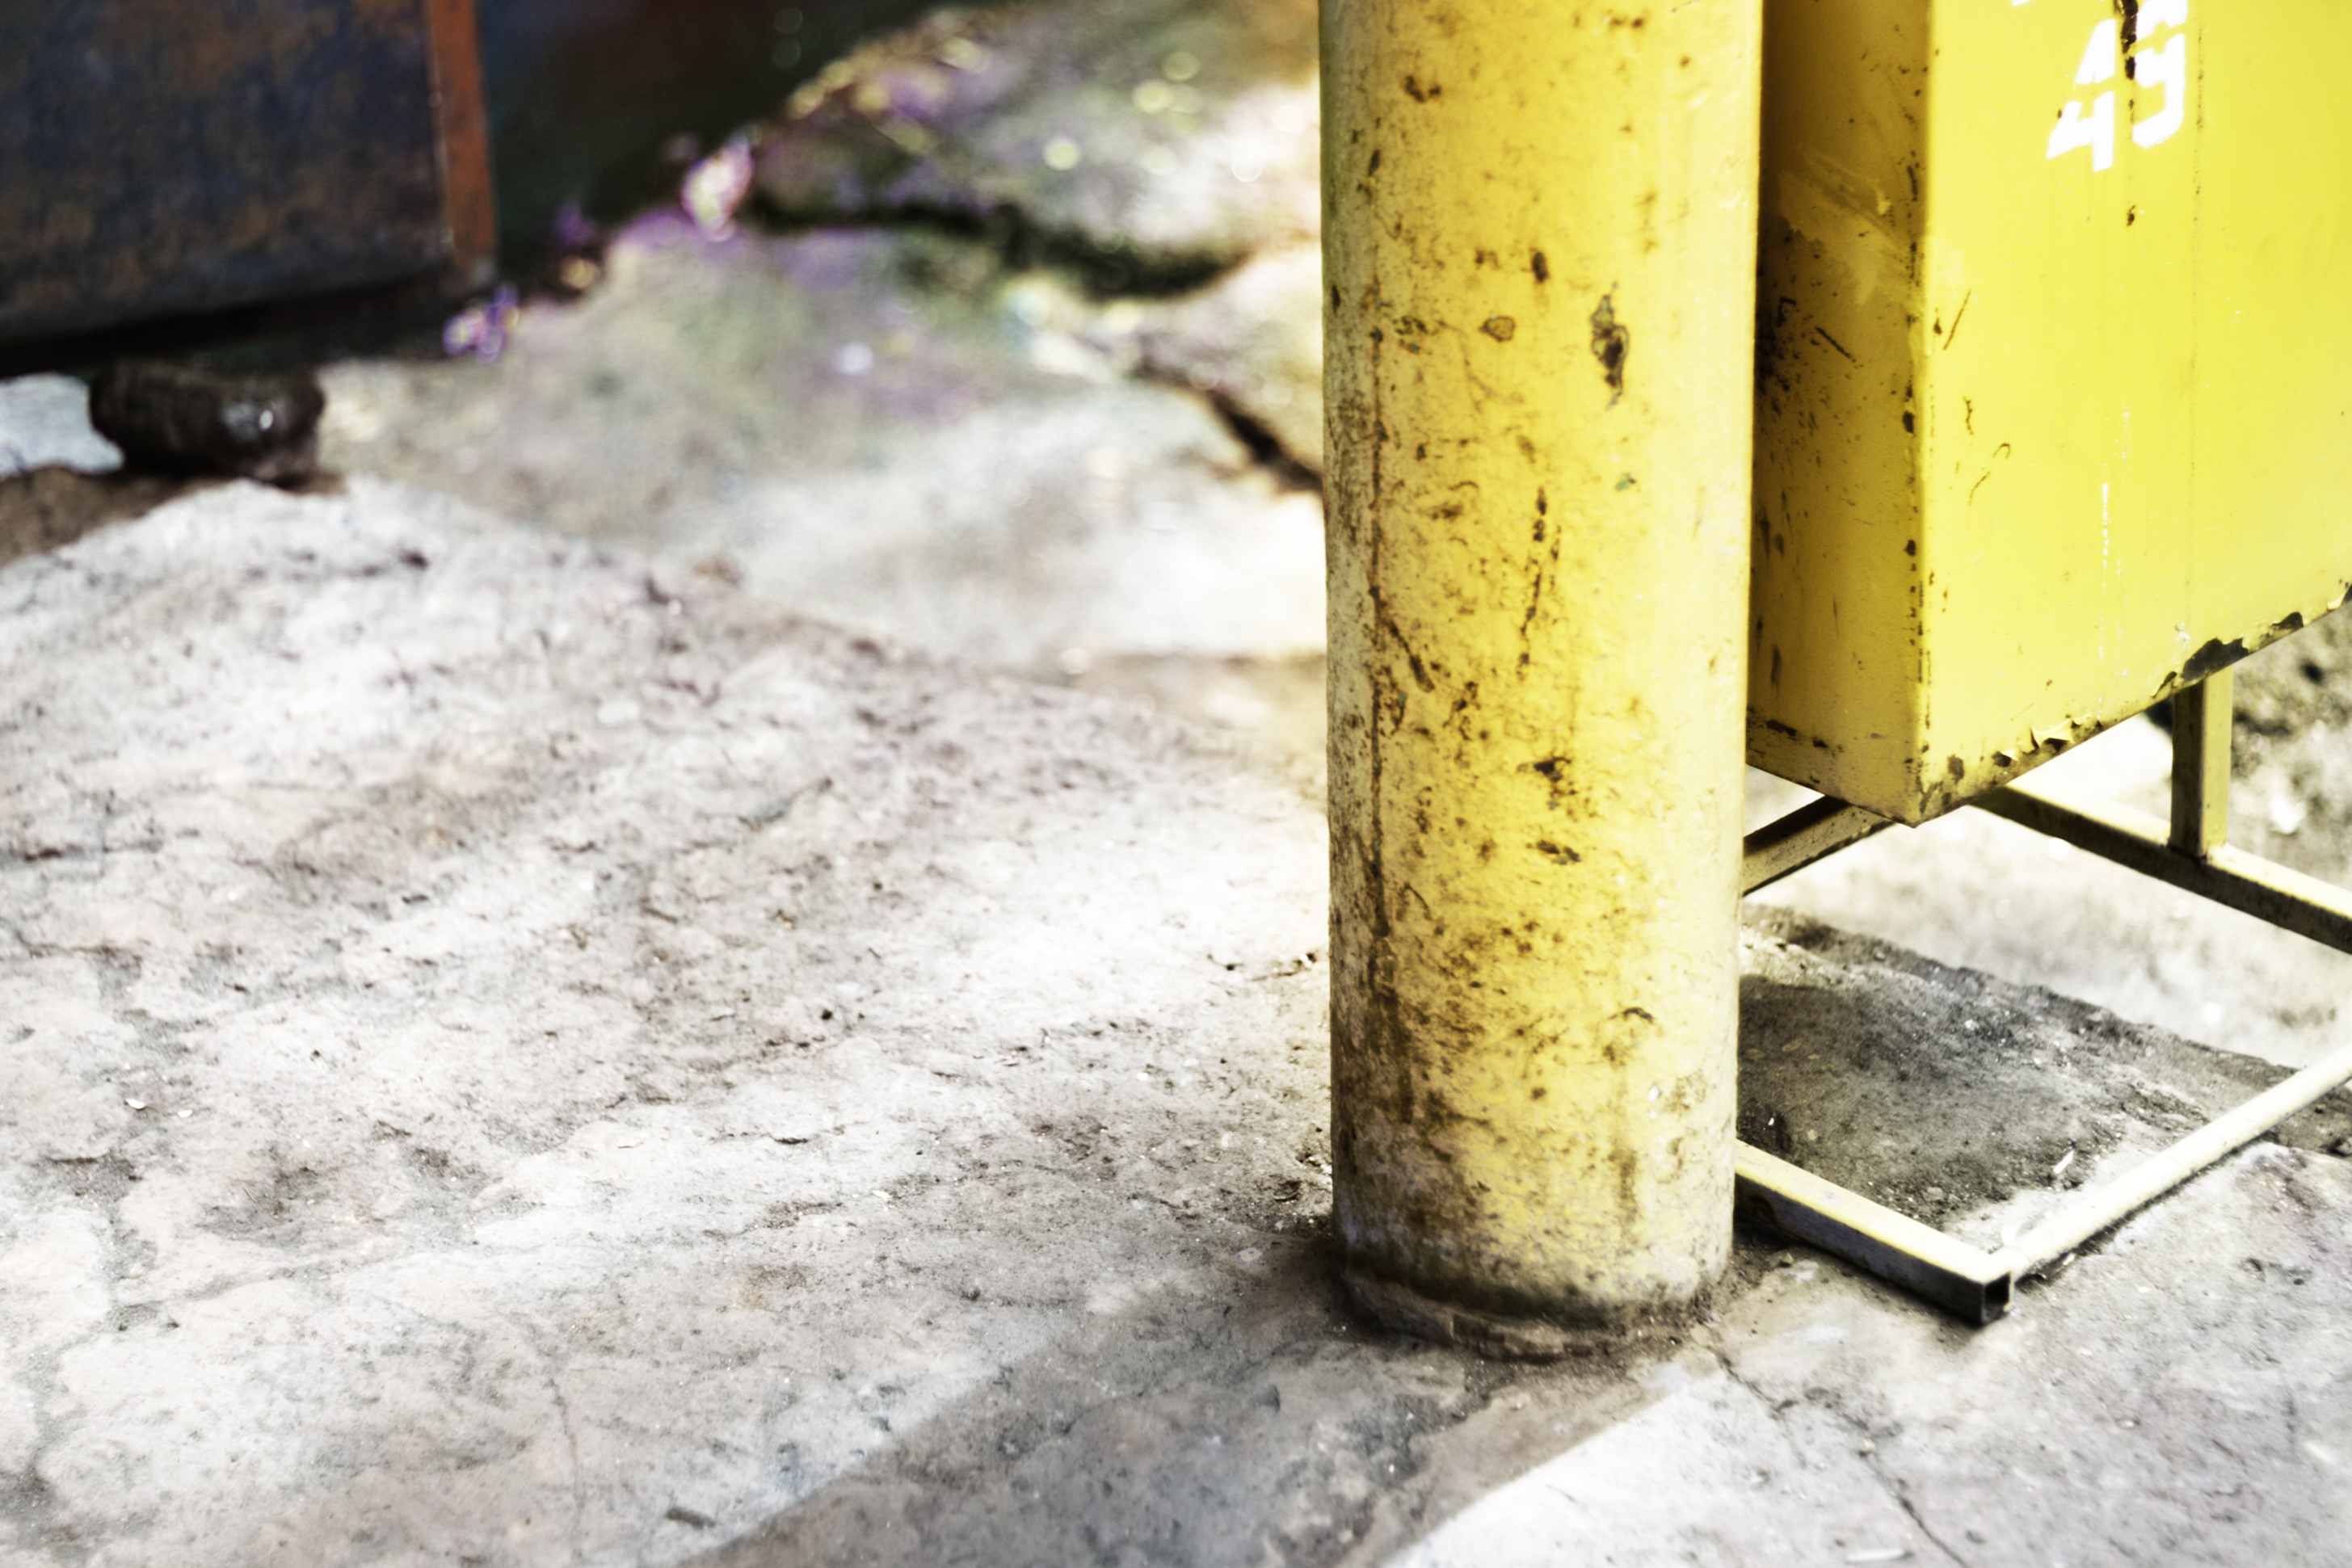 outdoor, Abstract, Close-up, Scene, Yellow, HQ Photo